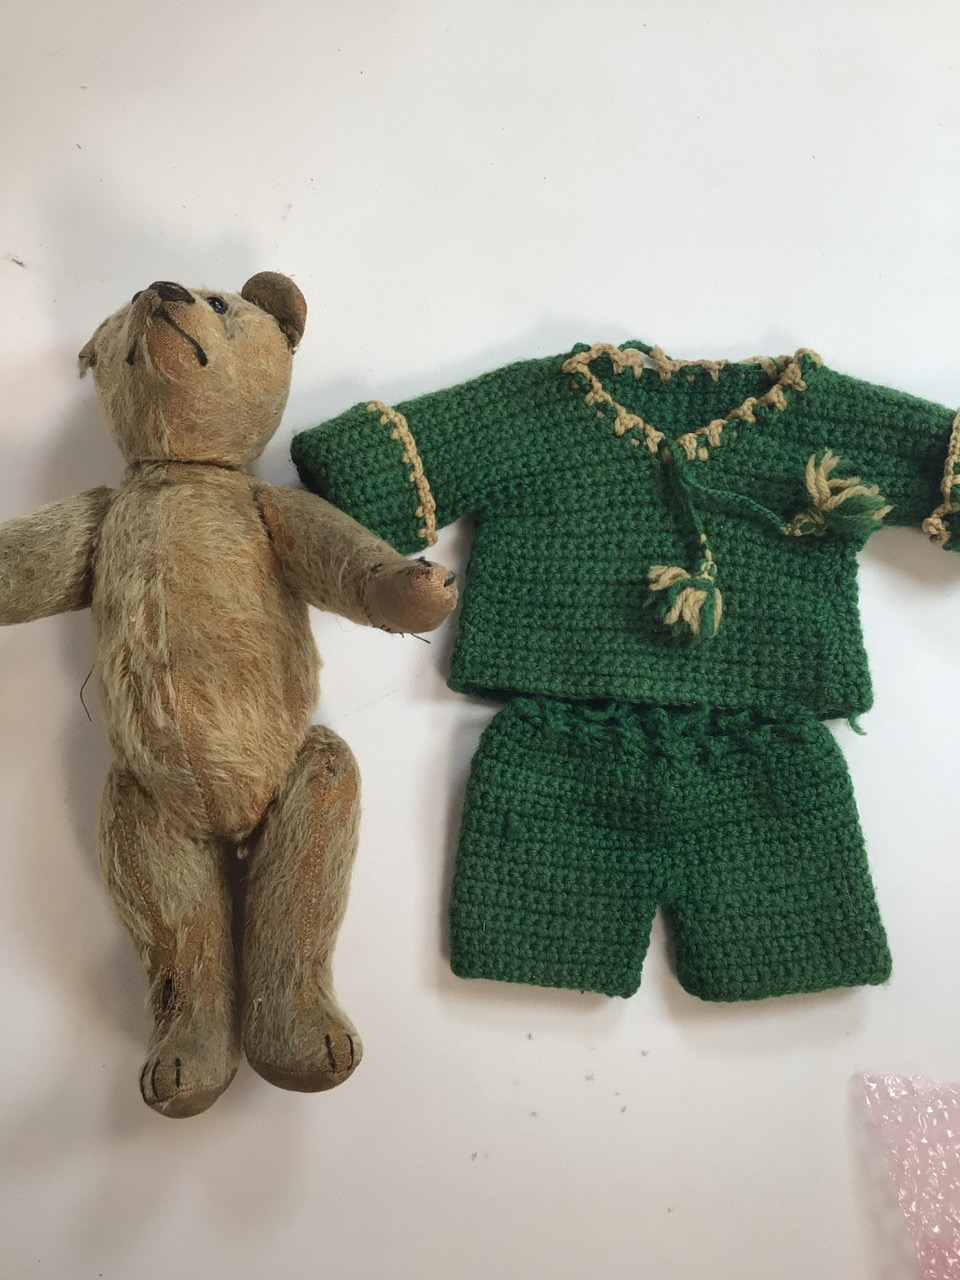 An early 1900s, assumed to be, Stieff bear with original shoe black button eyes and hump back. H: